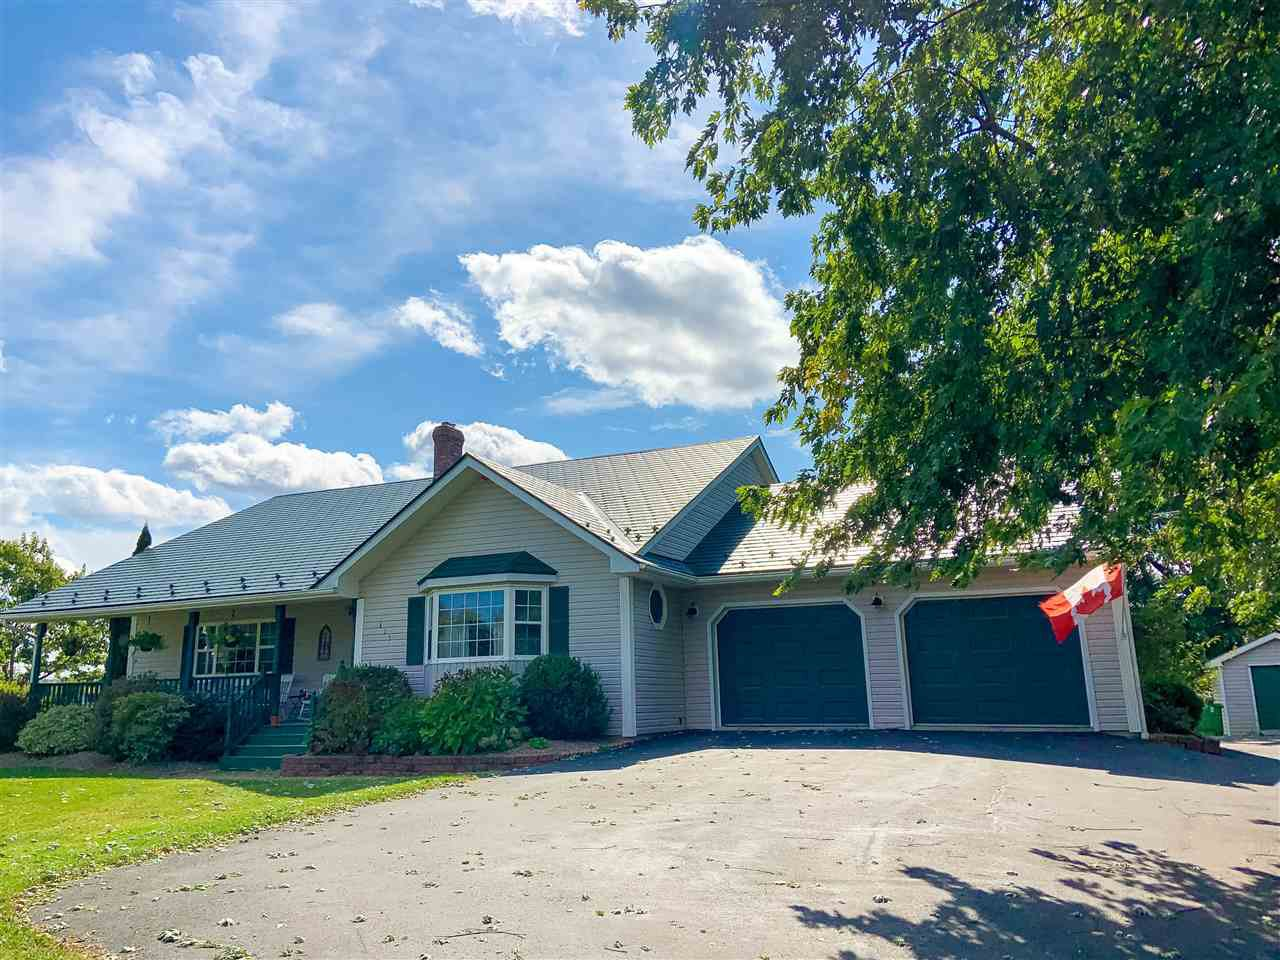 Main Photo: 415 Gabriel Road in Falmouth: 403-Hants County Residential for sale (Annapolis Valley)  : MLS®# 202019866